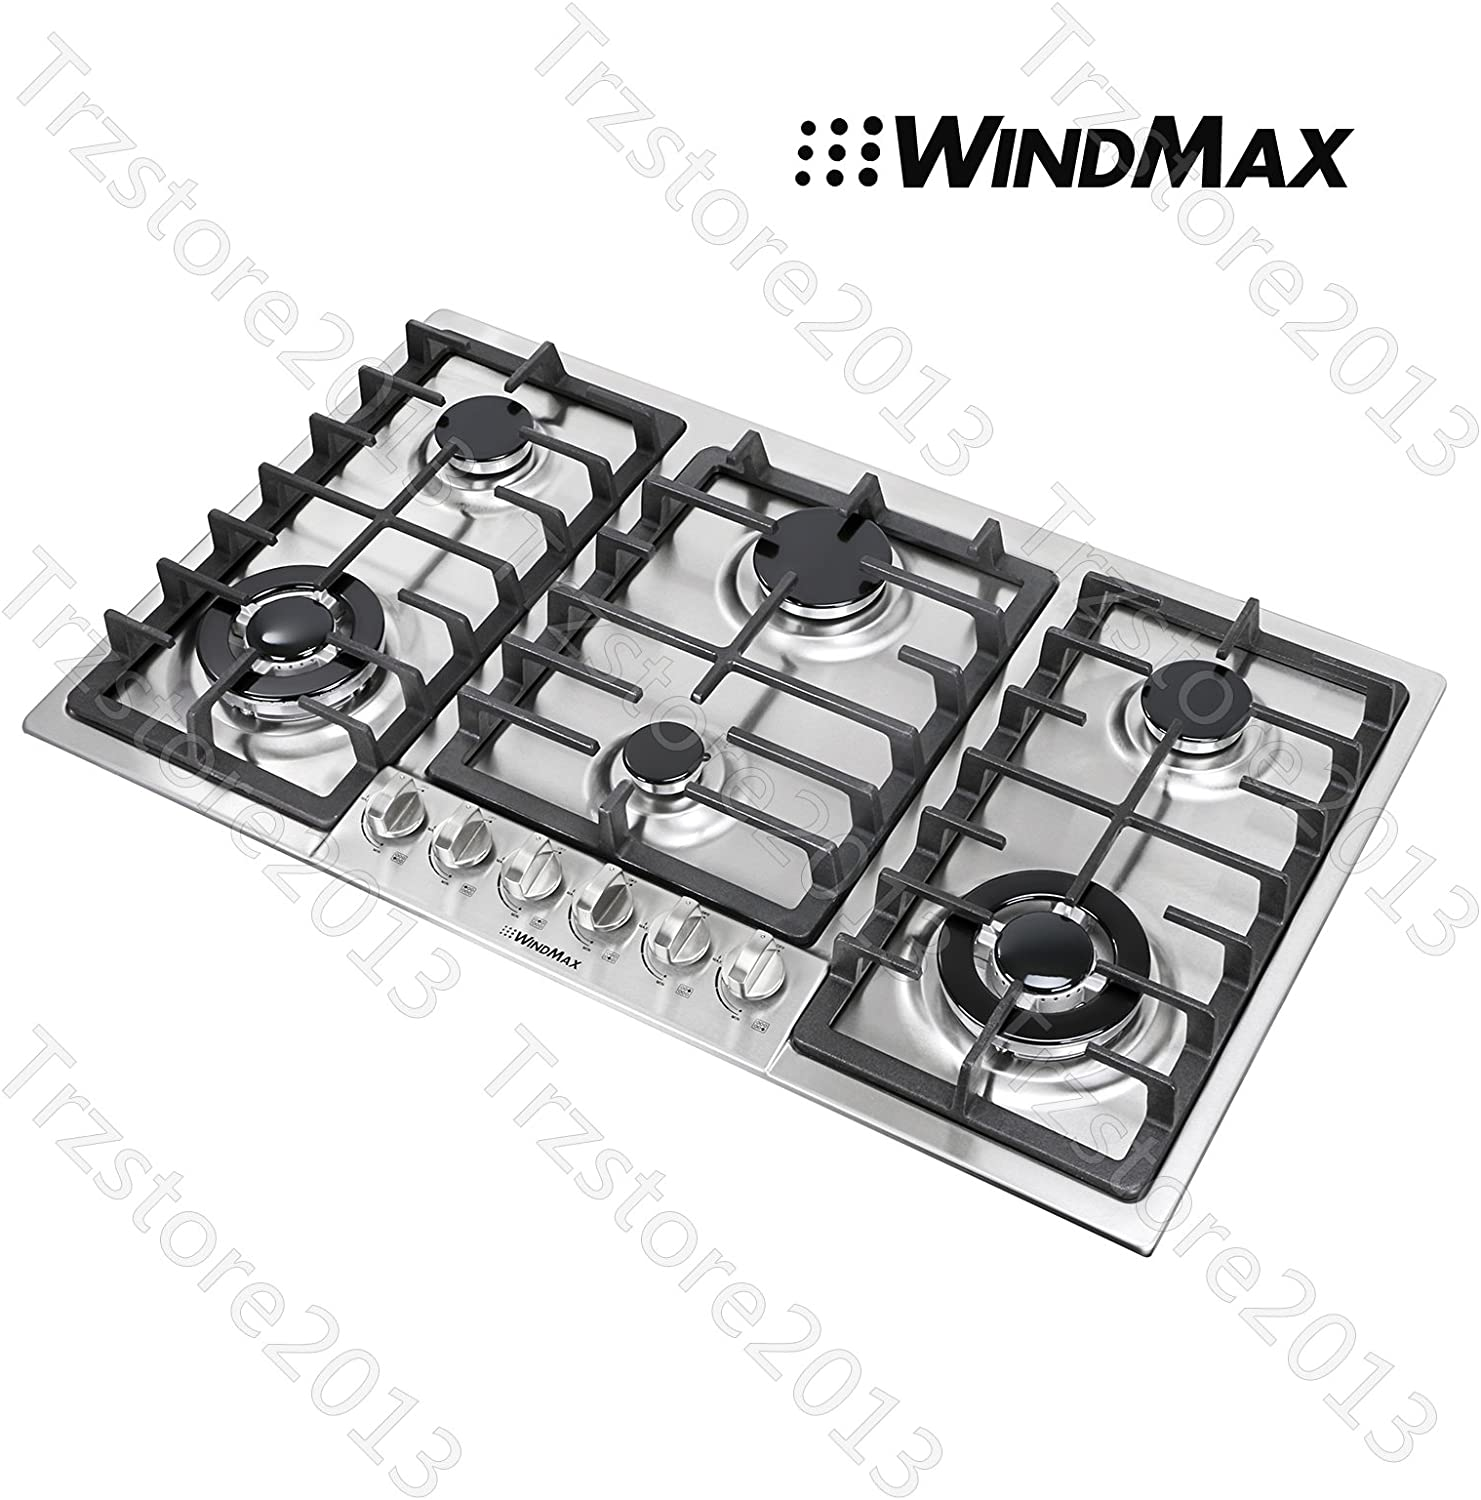 Amazon Com Windmax 34 Titanium 6 Burners Built In Stoves Ng Lpg Cooktops Cooker Us Stored 68023 Appliances